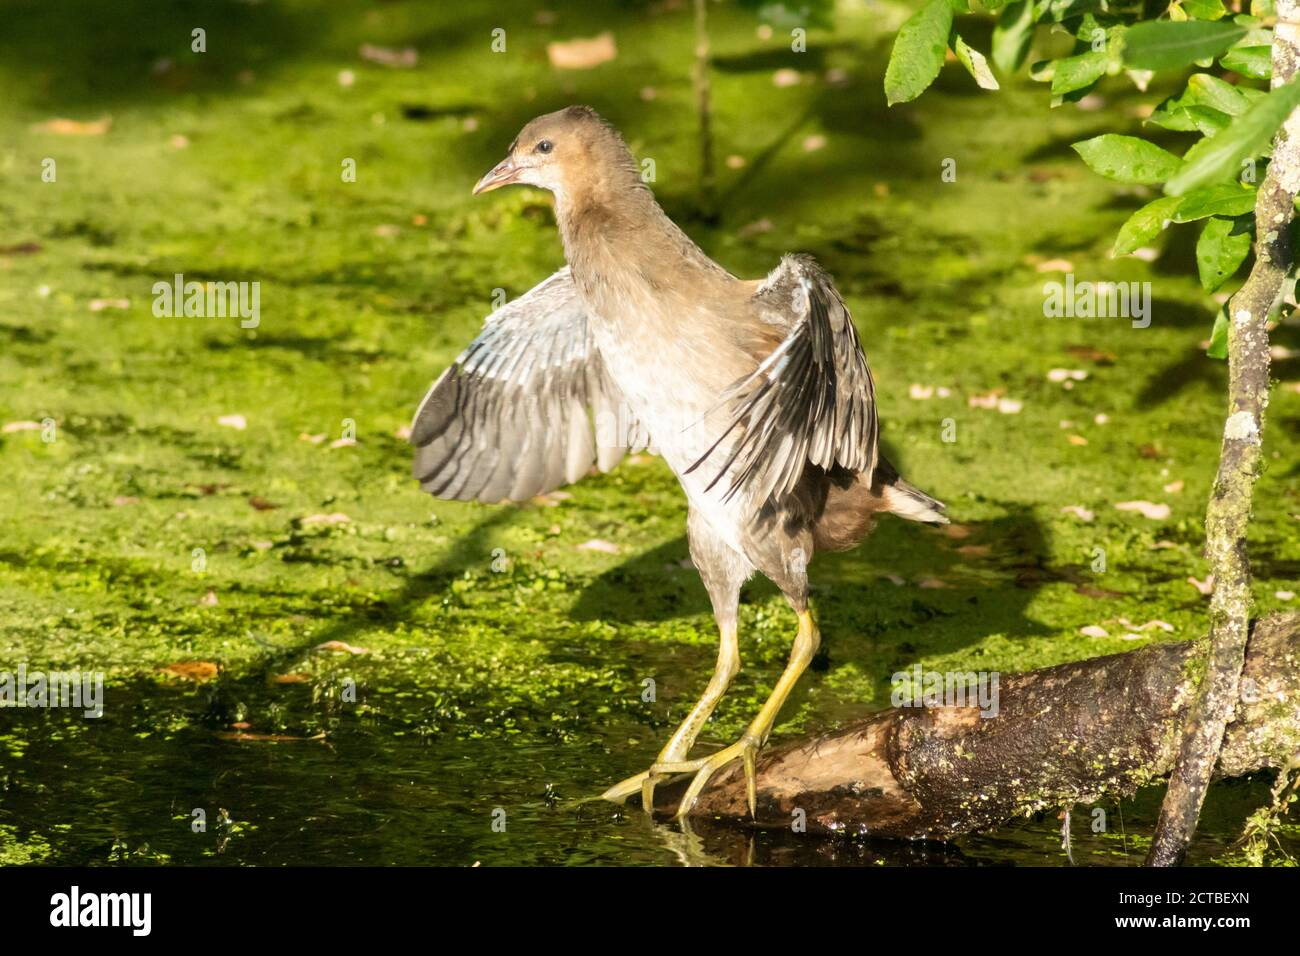 Juvenile Moorhen standing on branch flapping its wings after cleaning or preening. Water rail, gallinula chloropus, rallidae Stock Photo